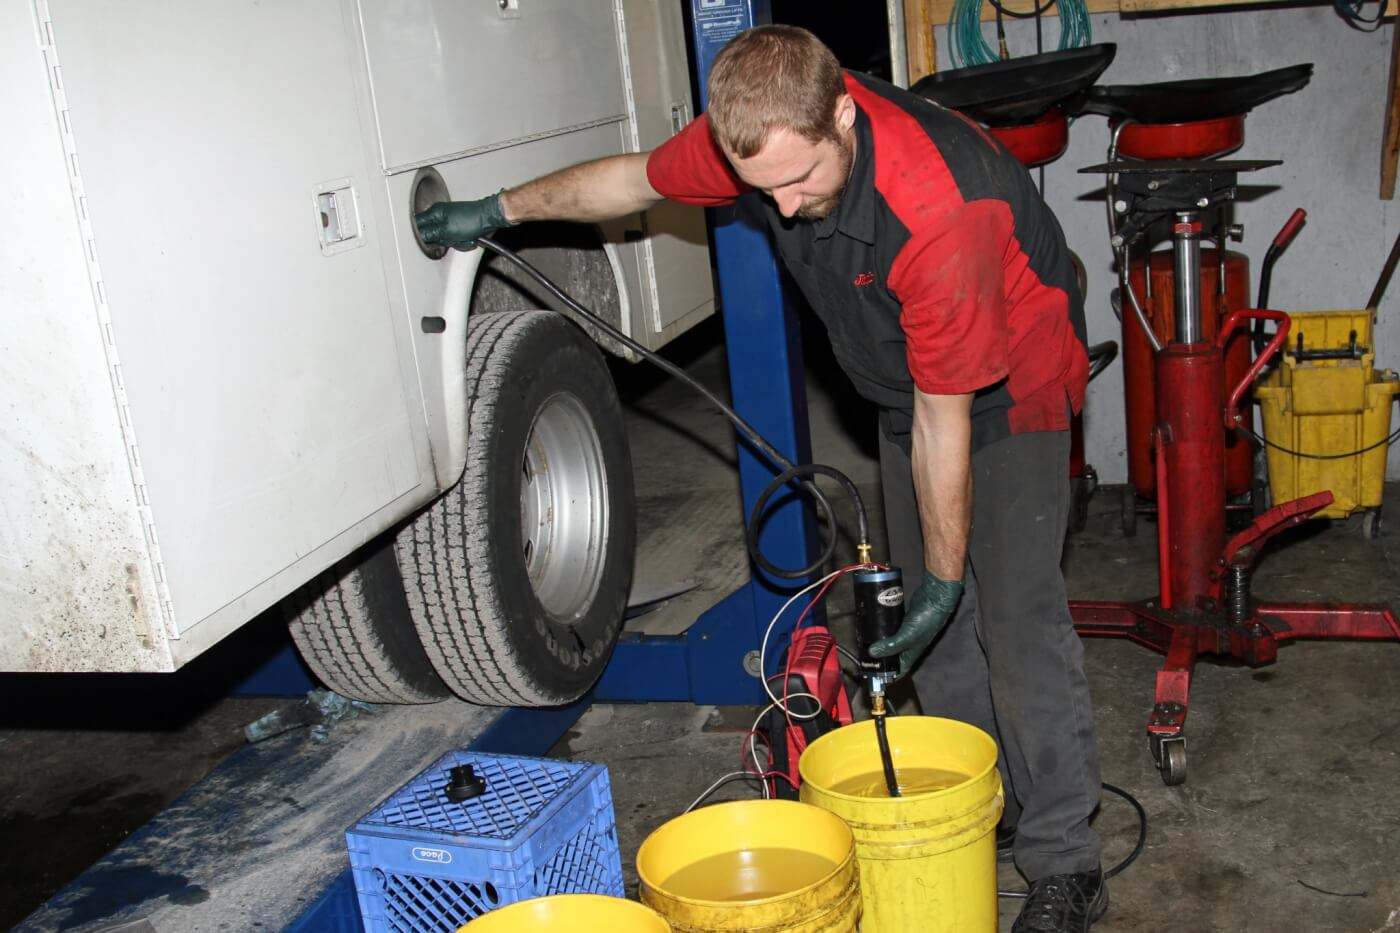 26. To complete the installation, he pumps the drained fuel back into the fuel tank then cycles the ignition several times to prime the fuel system with the AirDog pump and starts the truck. While the truck is running, Grubb carefully inspects the complete system for leaks.